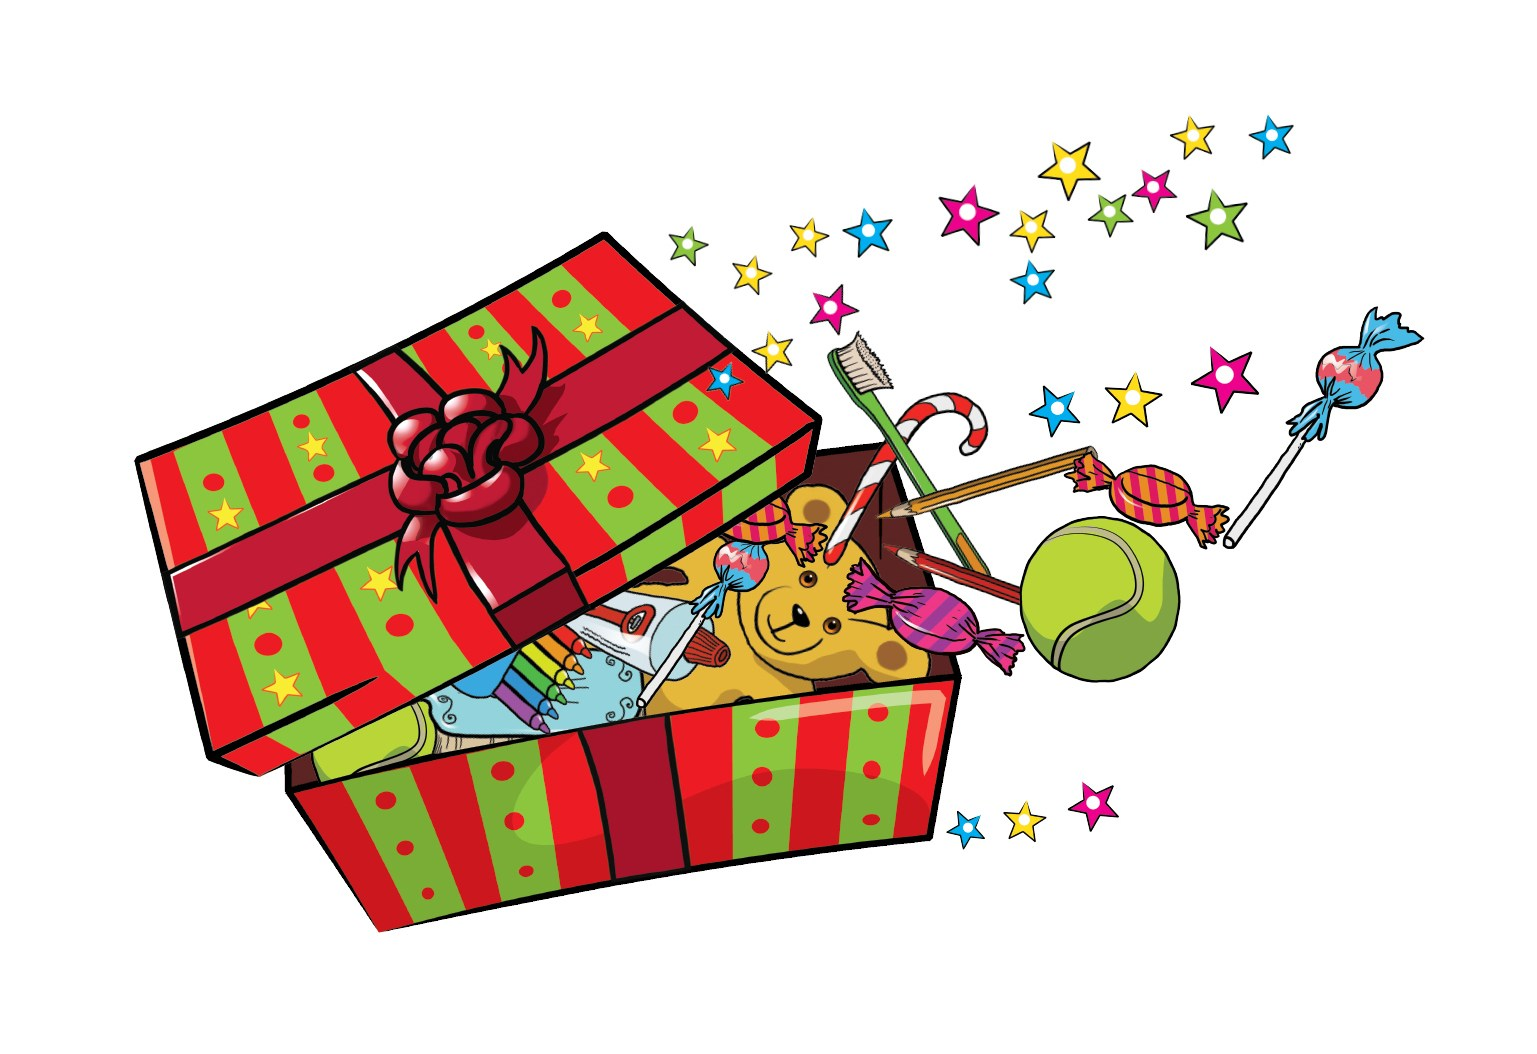 Operation christmas child shoebox clipart 4 » Clipart Portal.